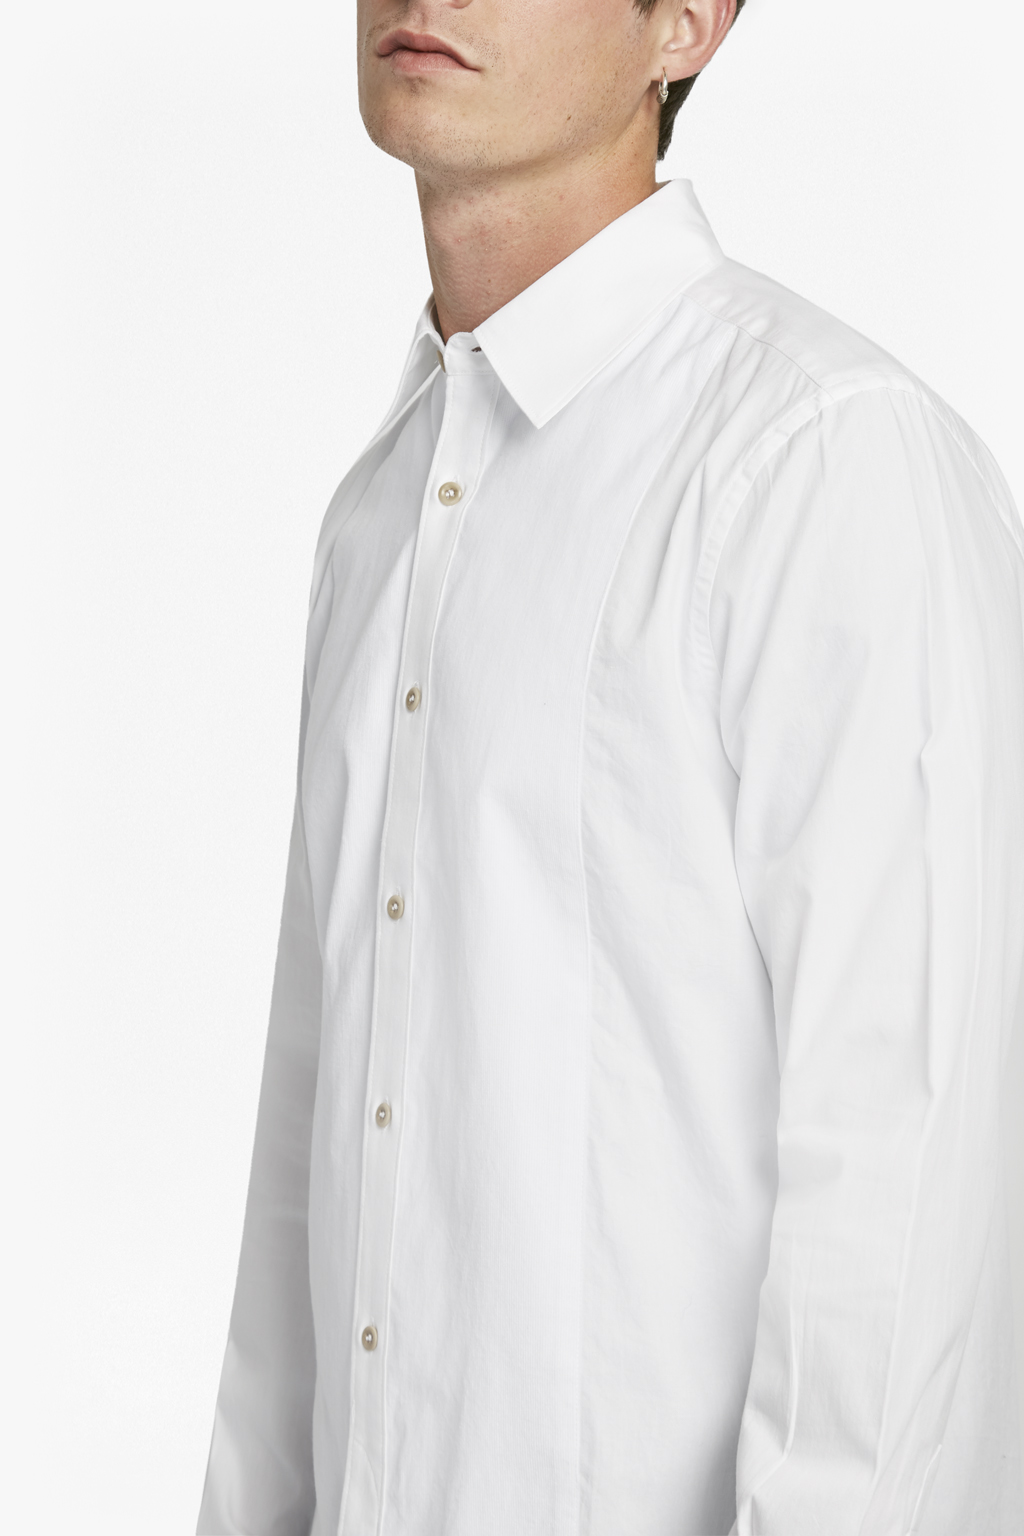 French Connection Mens Oxford+Corduroy Formal